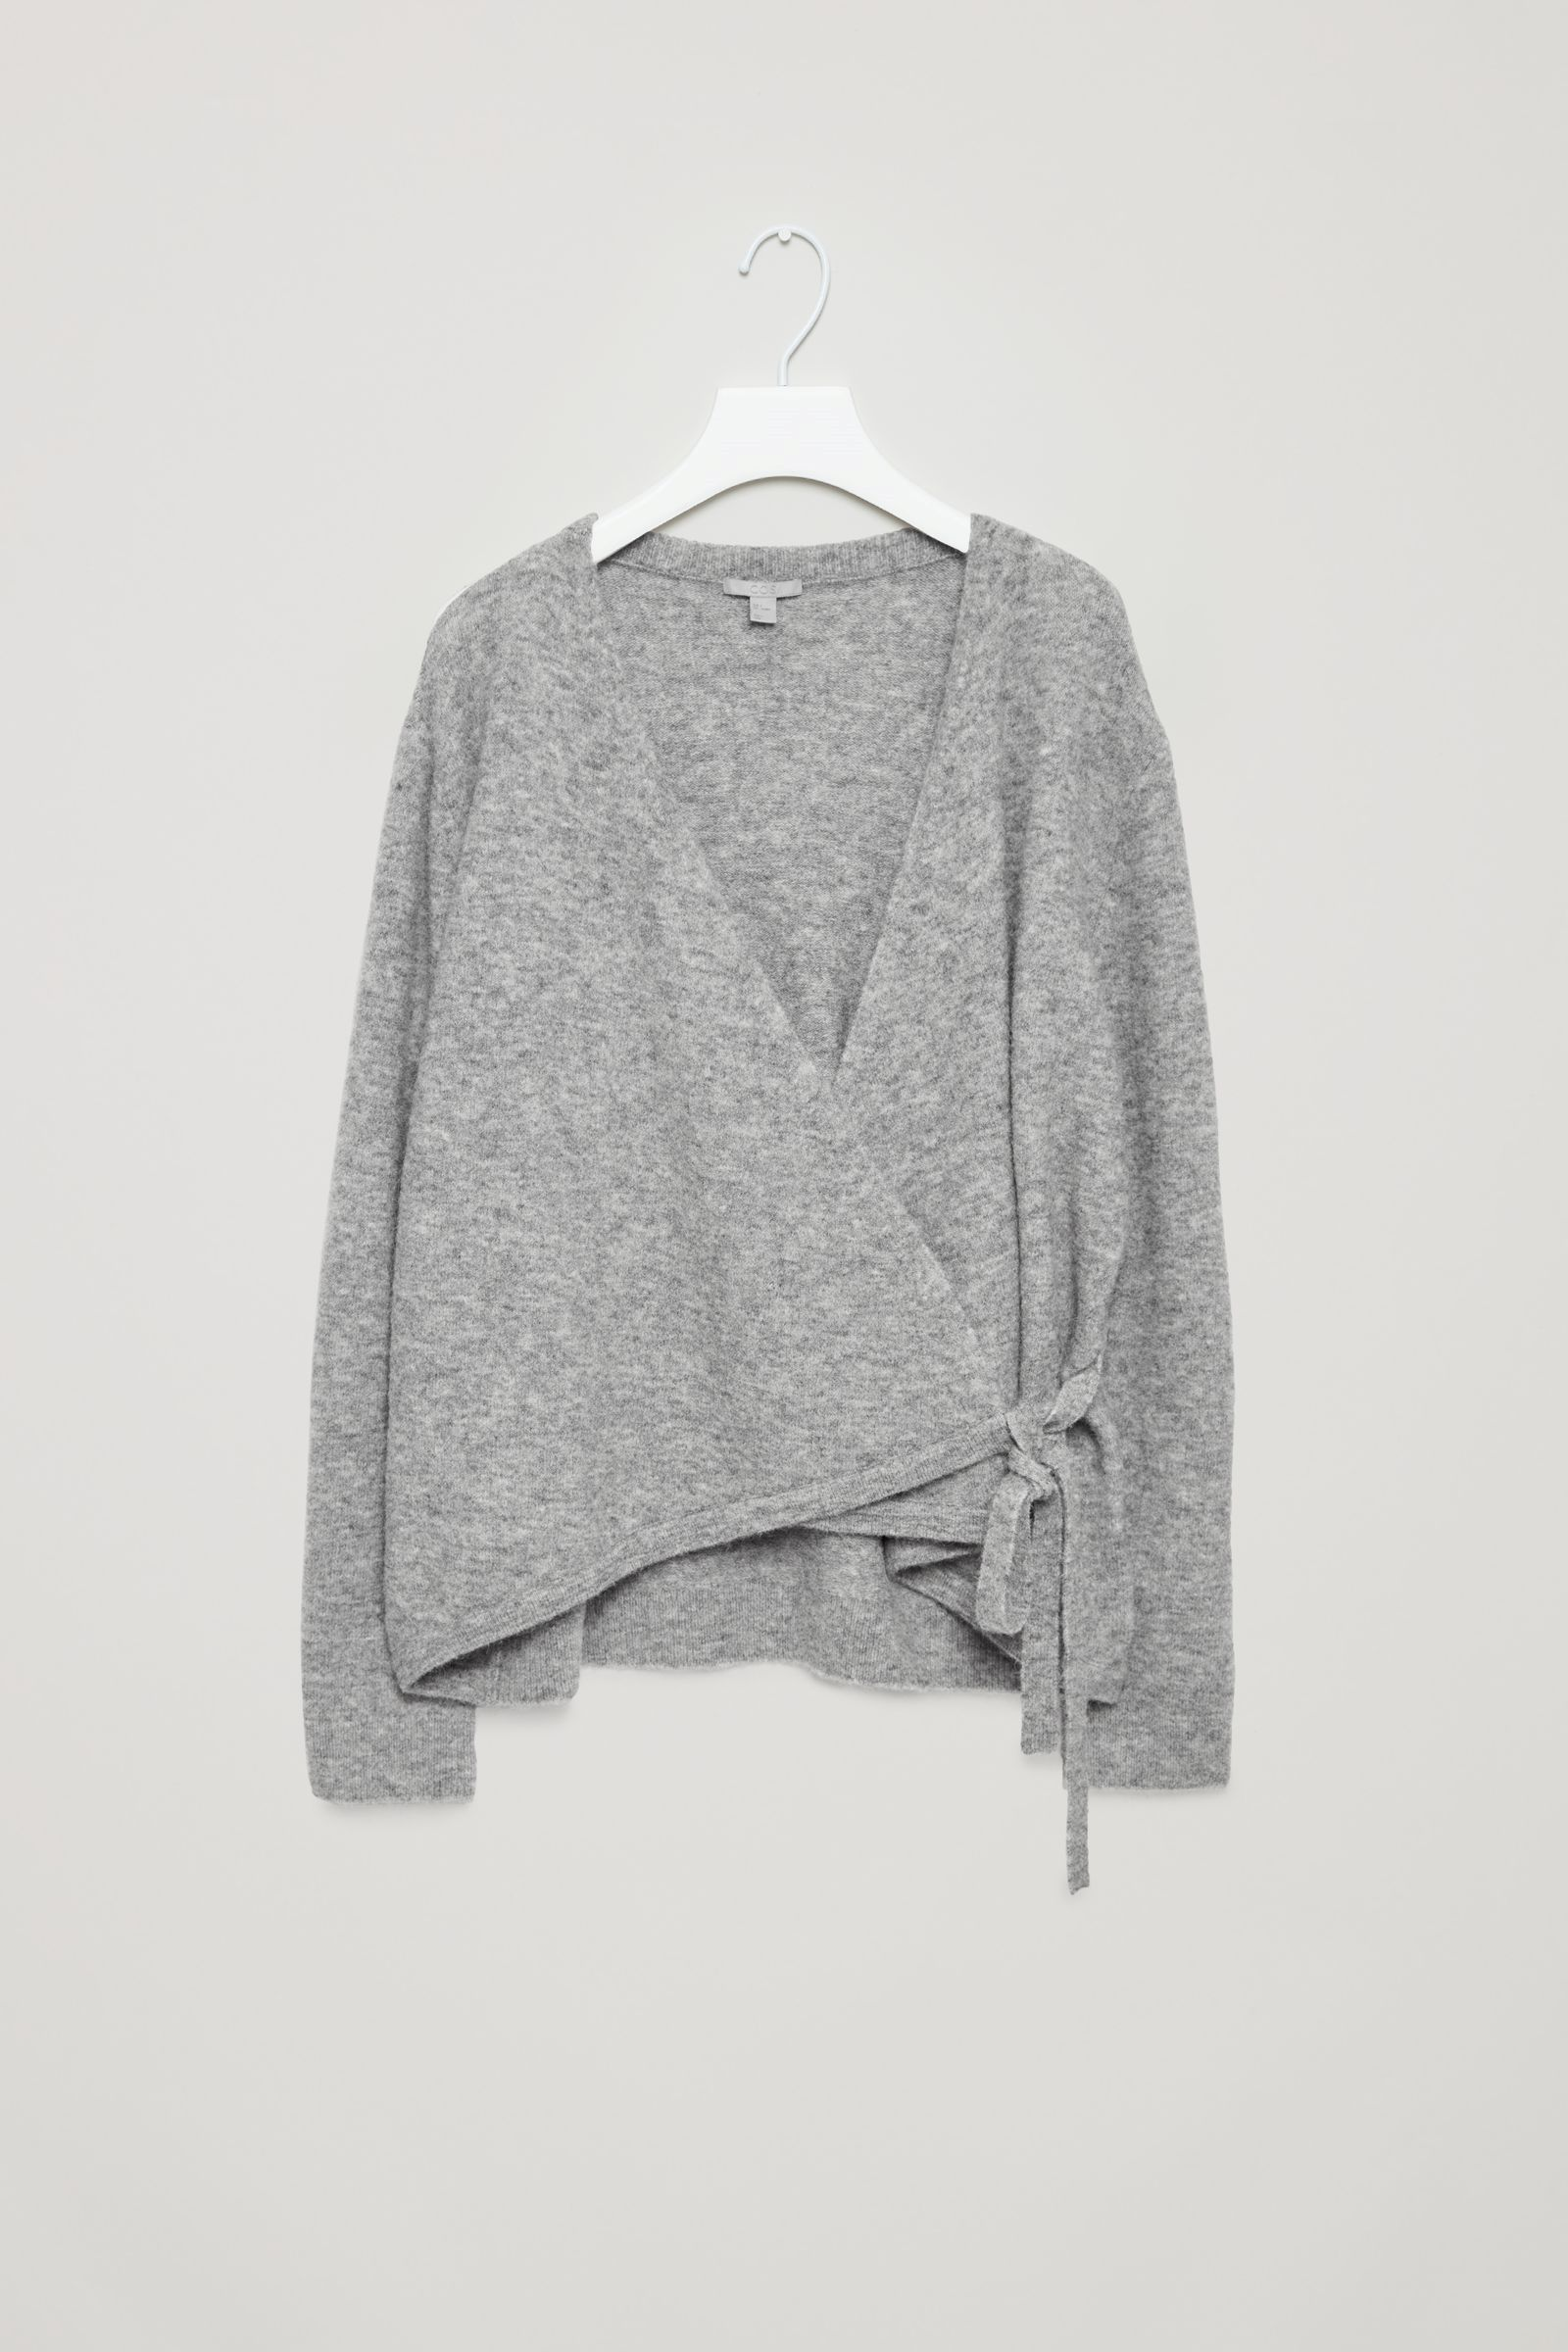 053815f132e3 COS image 6 of Wrap-over cardigan in Light Grey   Wishlist ...